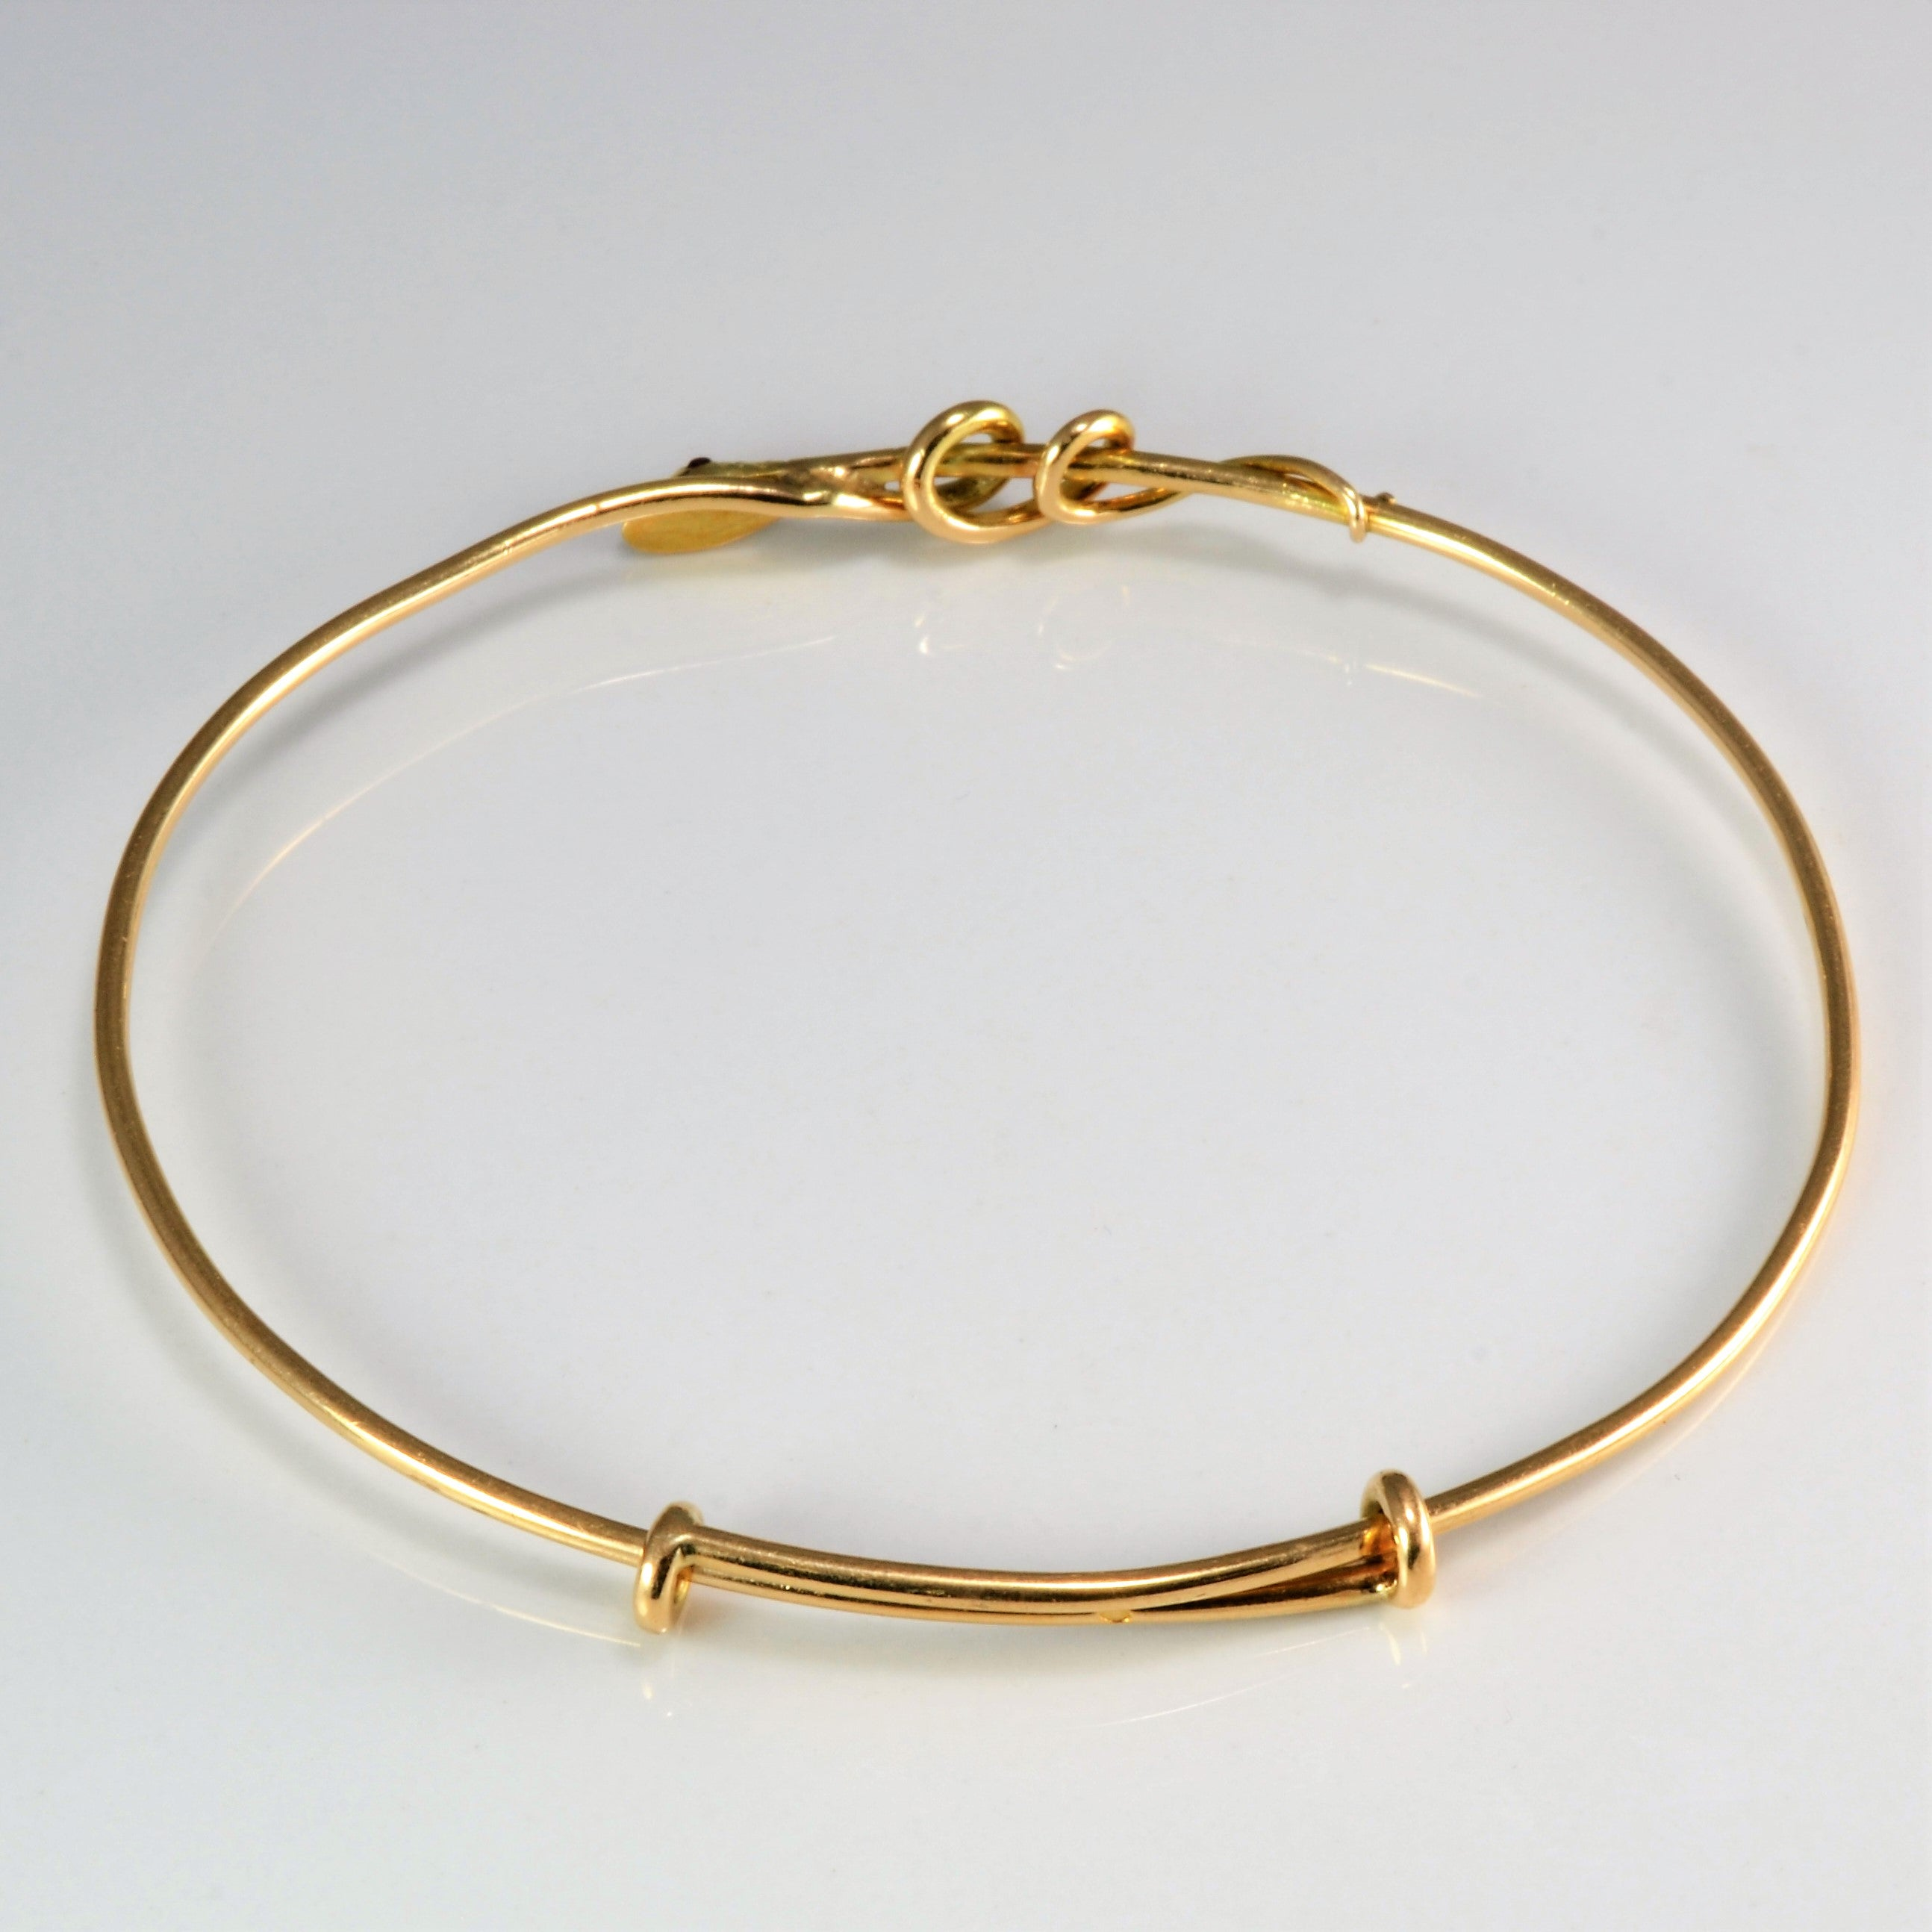 rose pinterest design style lee edblad pin gold bracelet